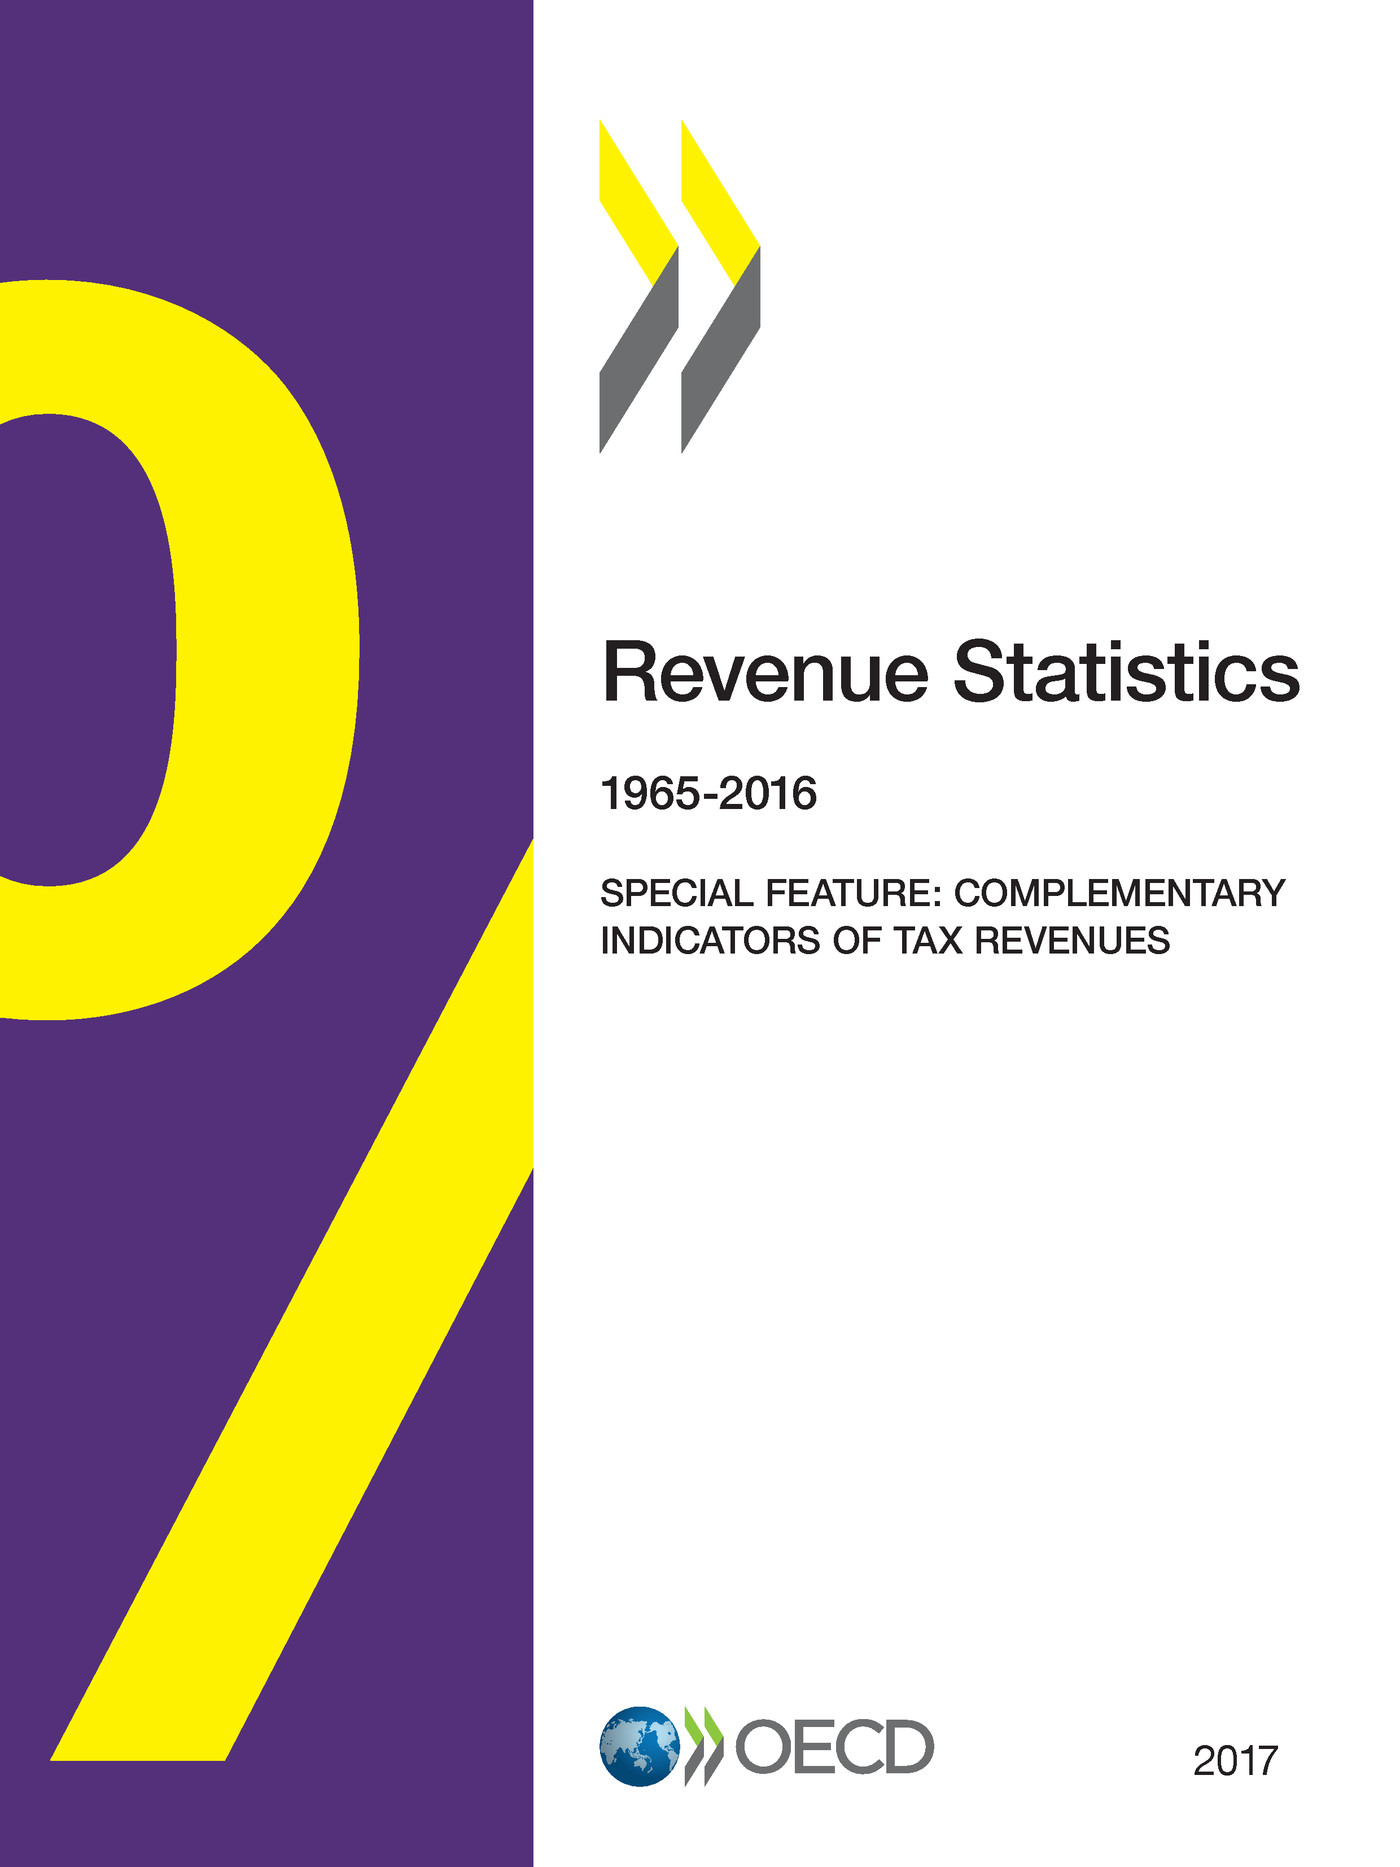 Revenue Statistics: 1965-2016 De  Collectif - OCDE / OECD